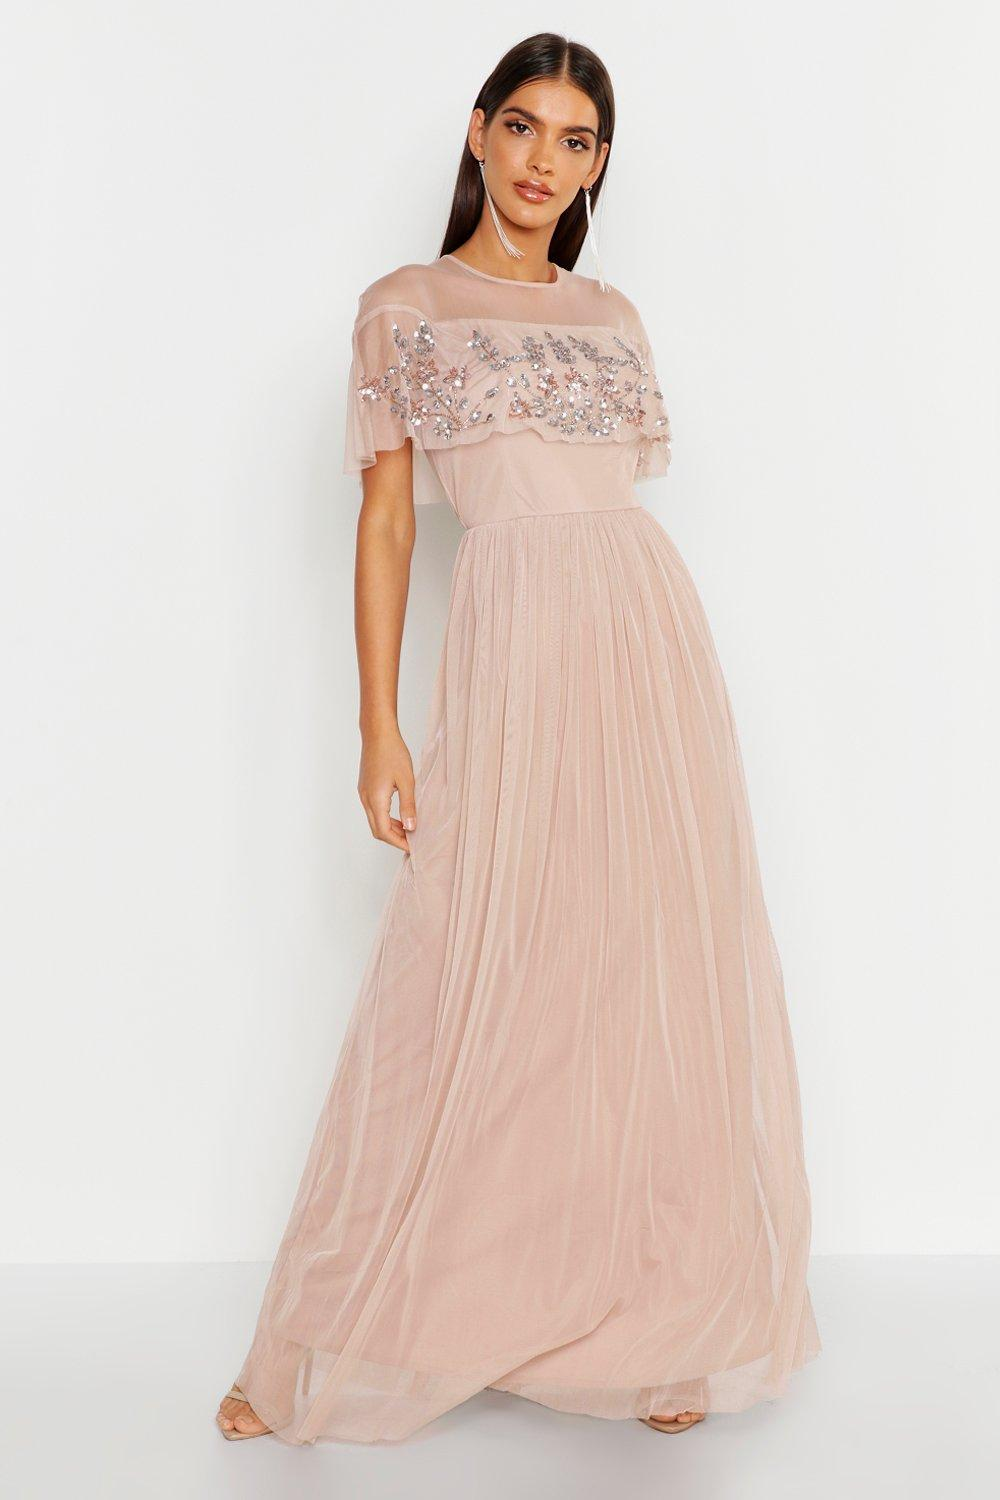 Vintage Evening Dresses and Formal Evening Gowns Embellished Cape Skater Maxi Dress  AT vintagedancer.com